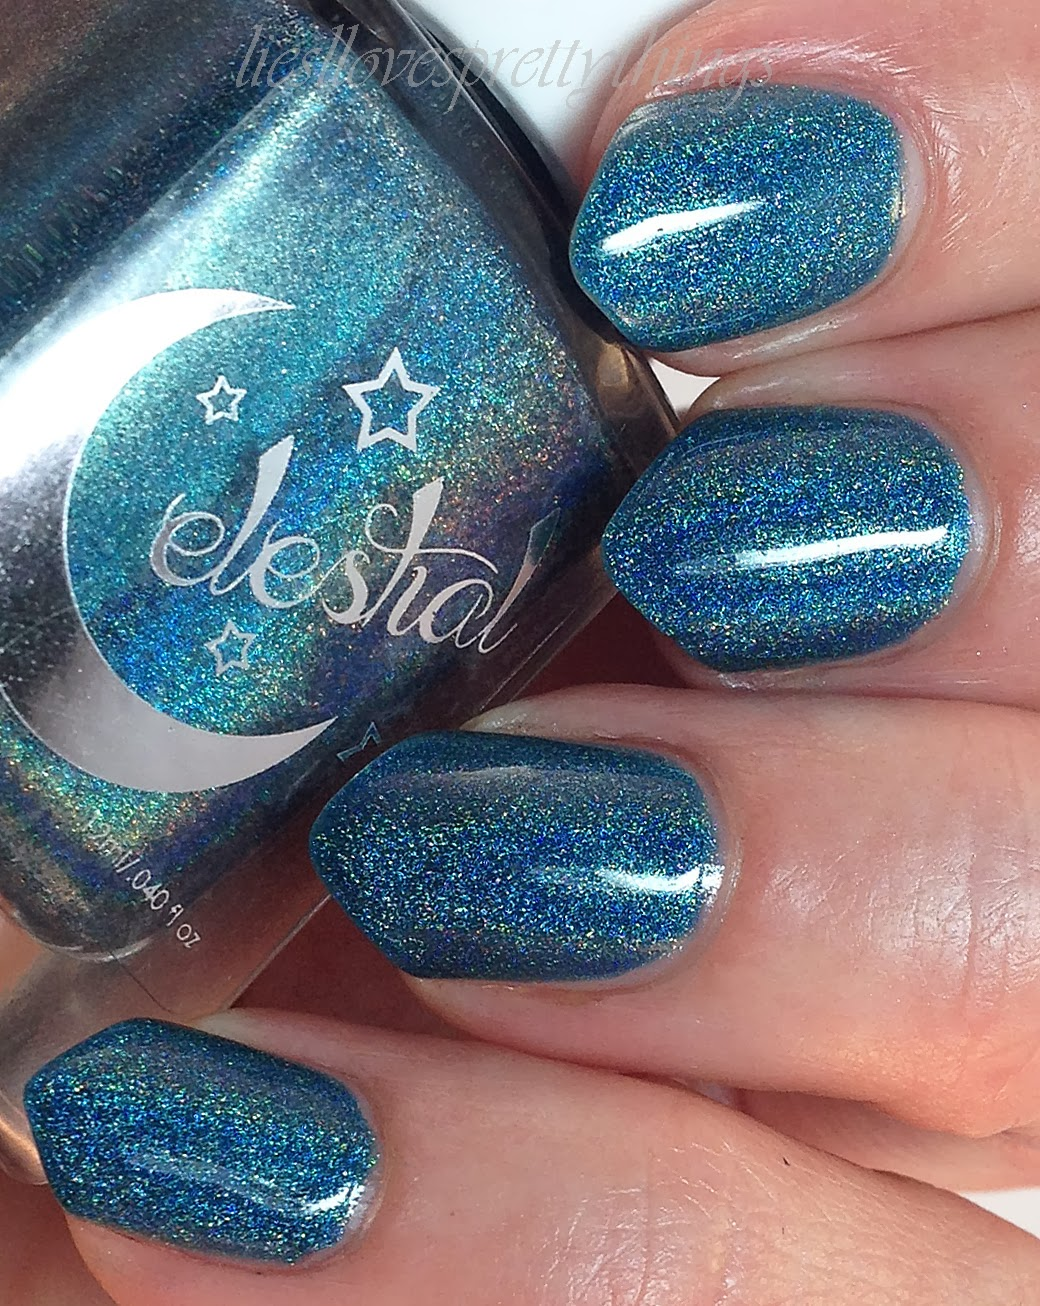 Celestial Cosmetics Ocean Mist swatch and review